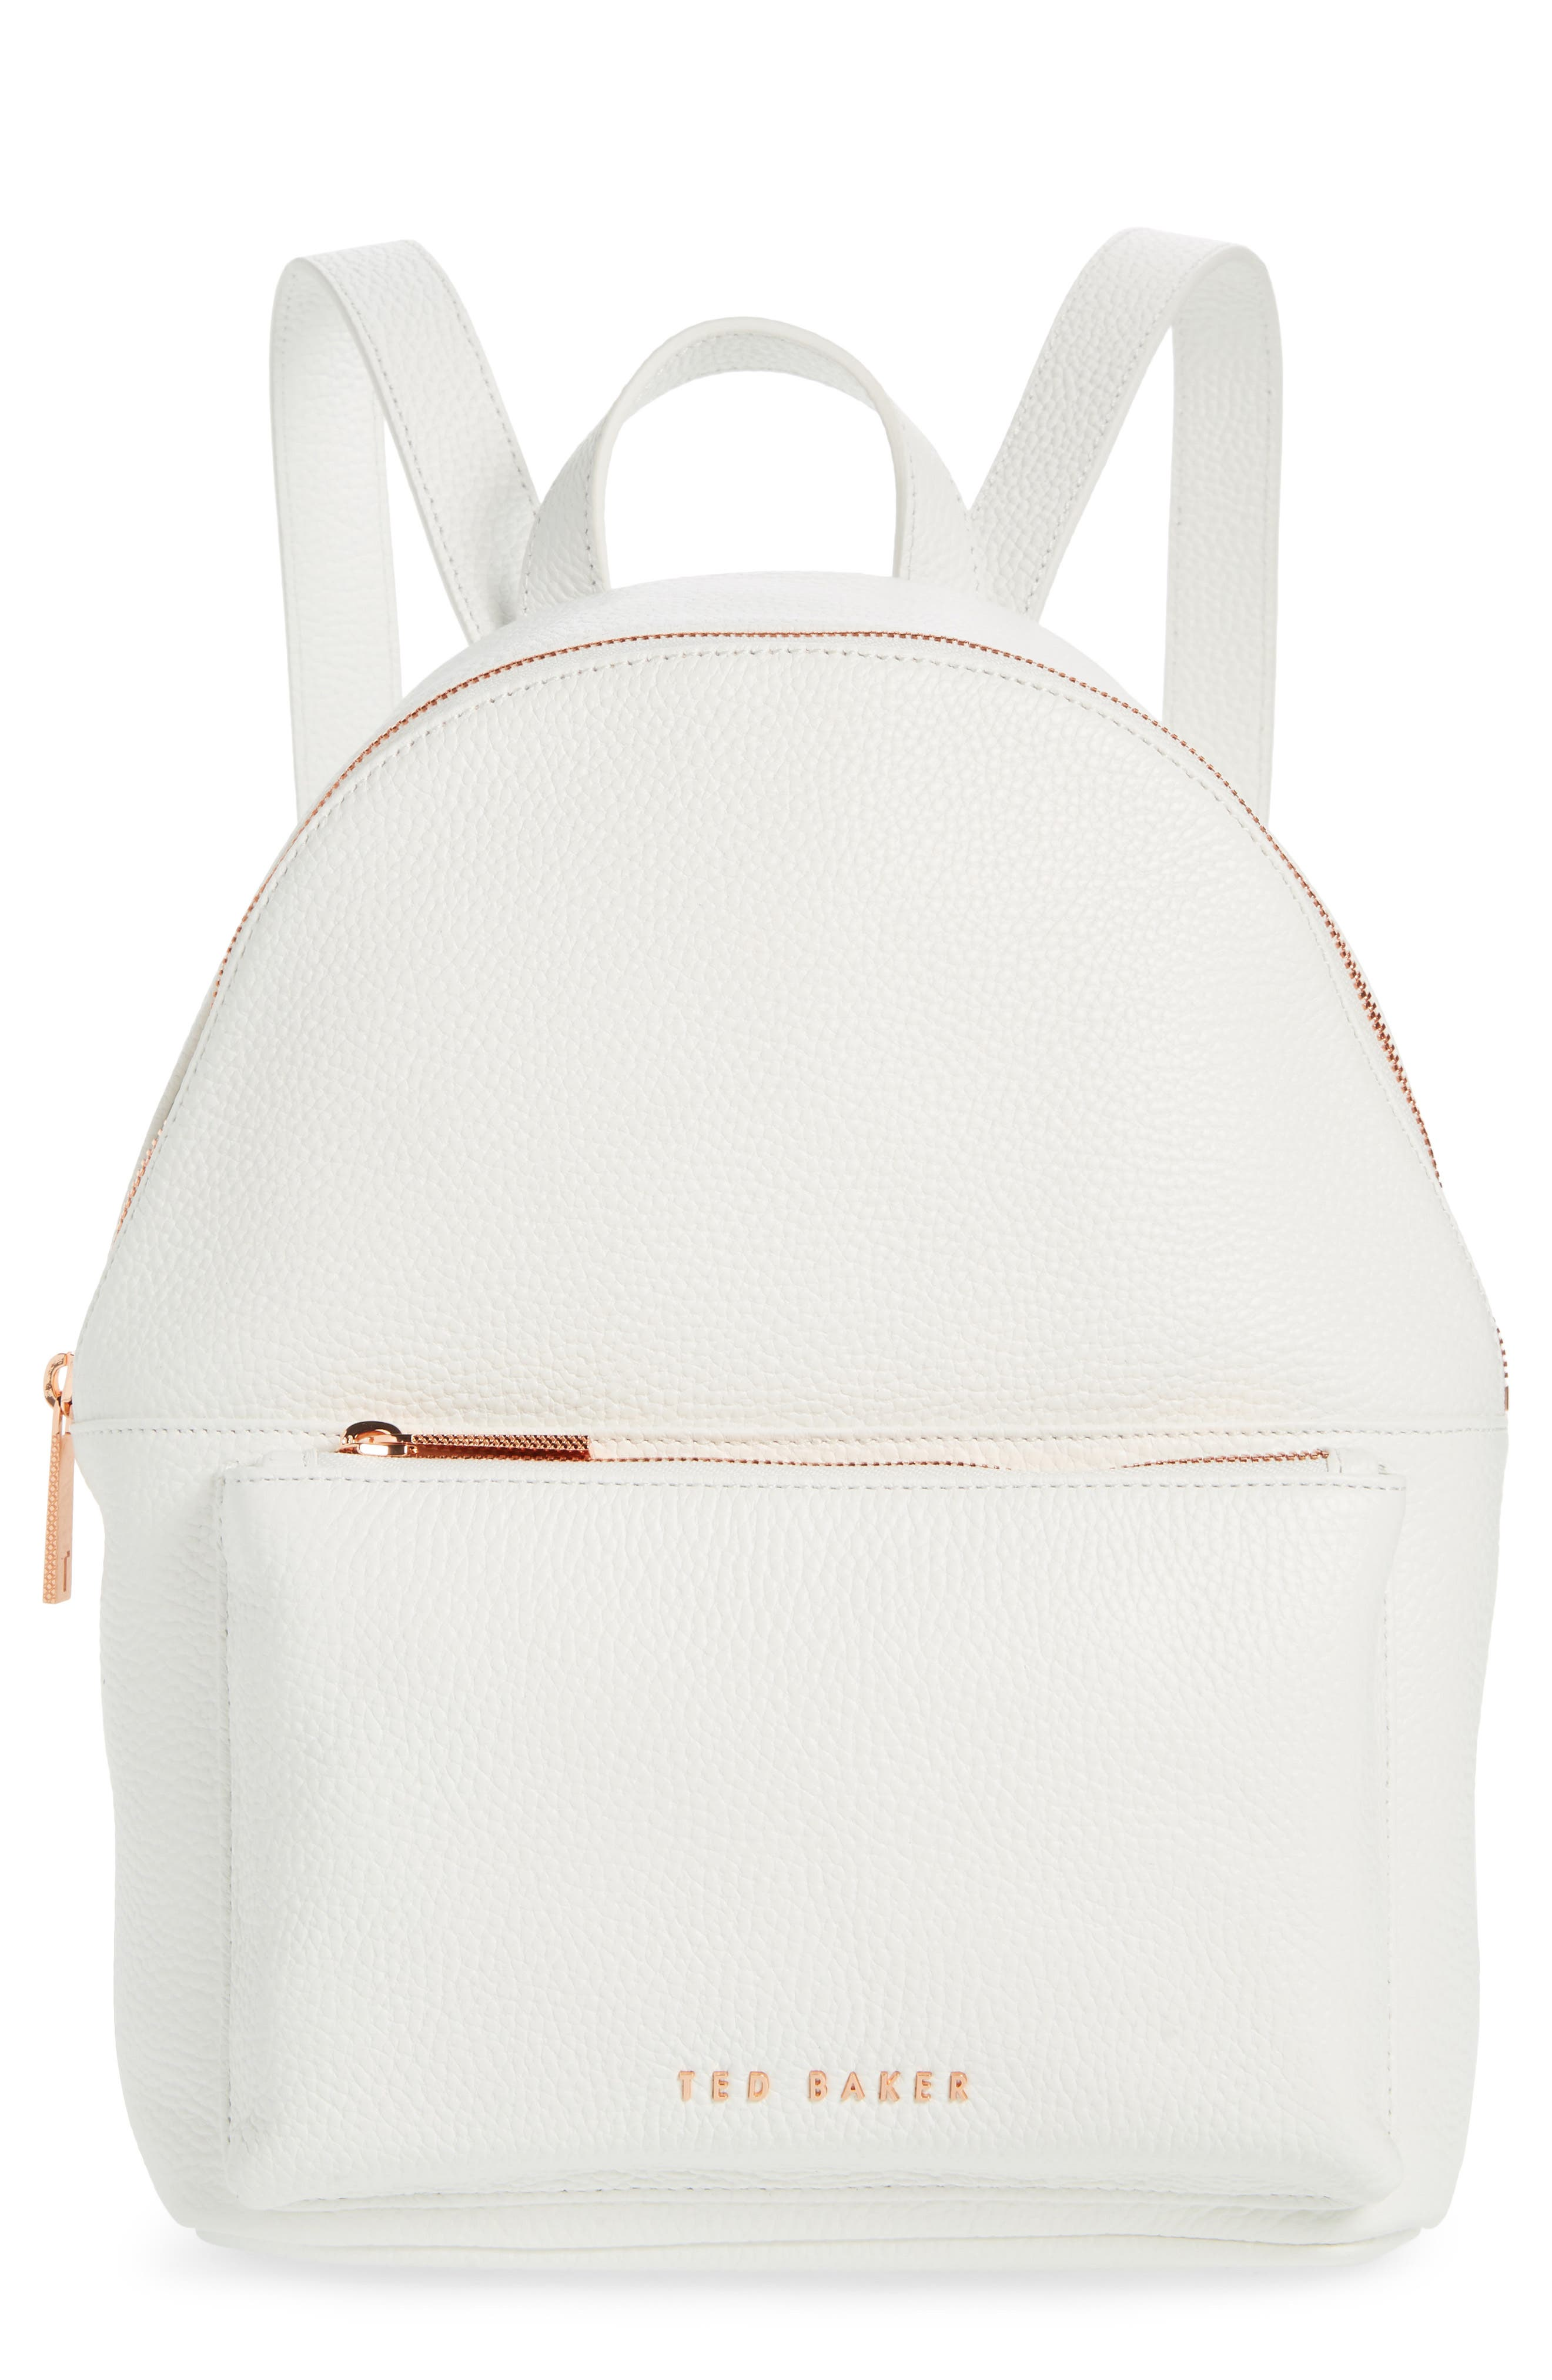 Pearen Leather Backpack,                             Main thumbnail 3, color,